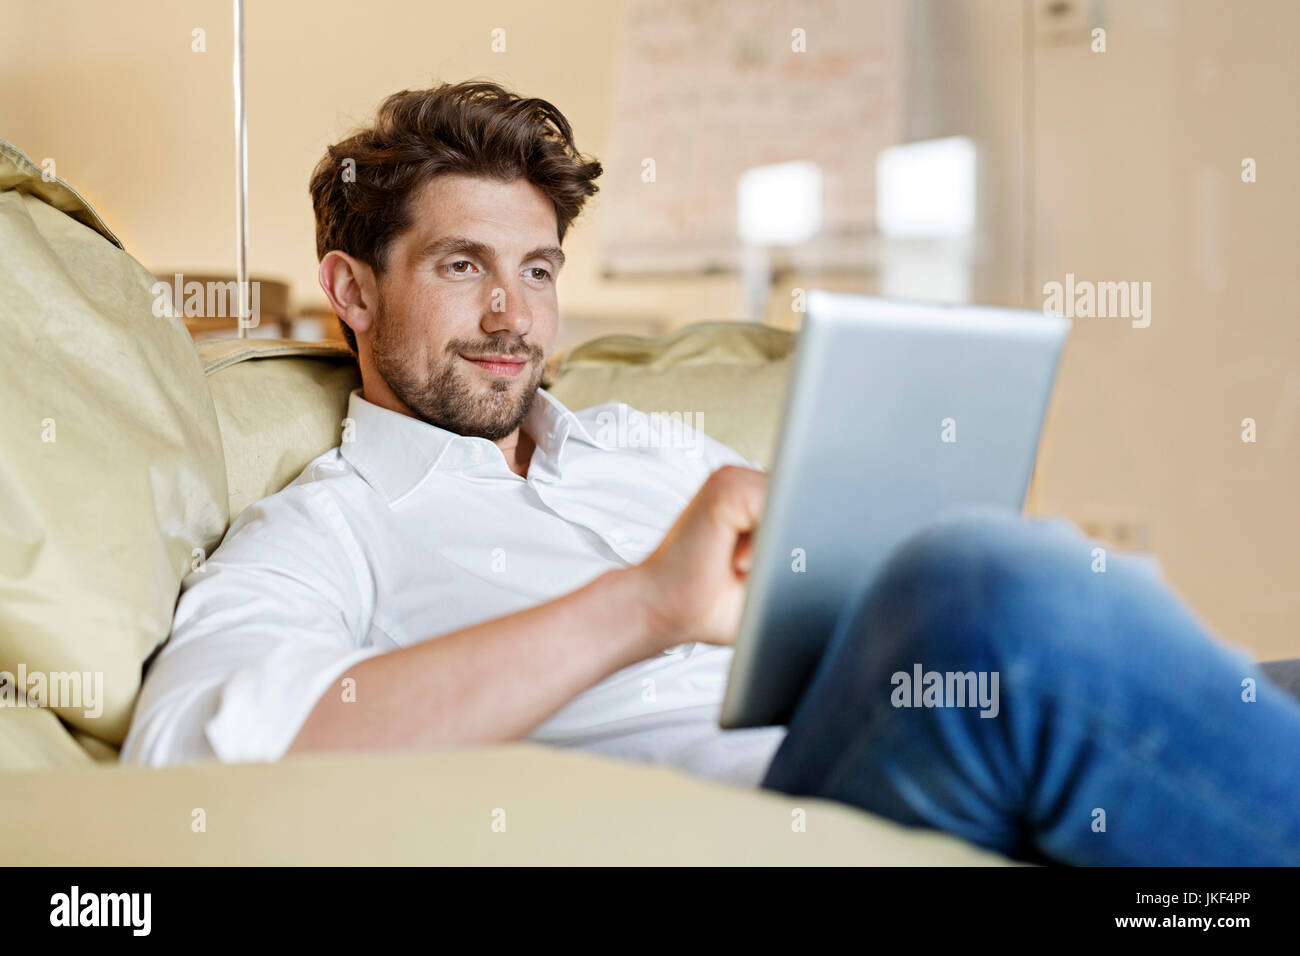 Smiling man in office using tablet in bean bag - Stock Image